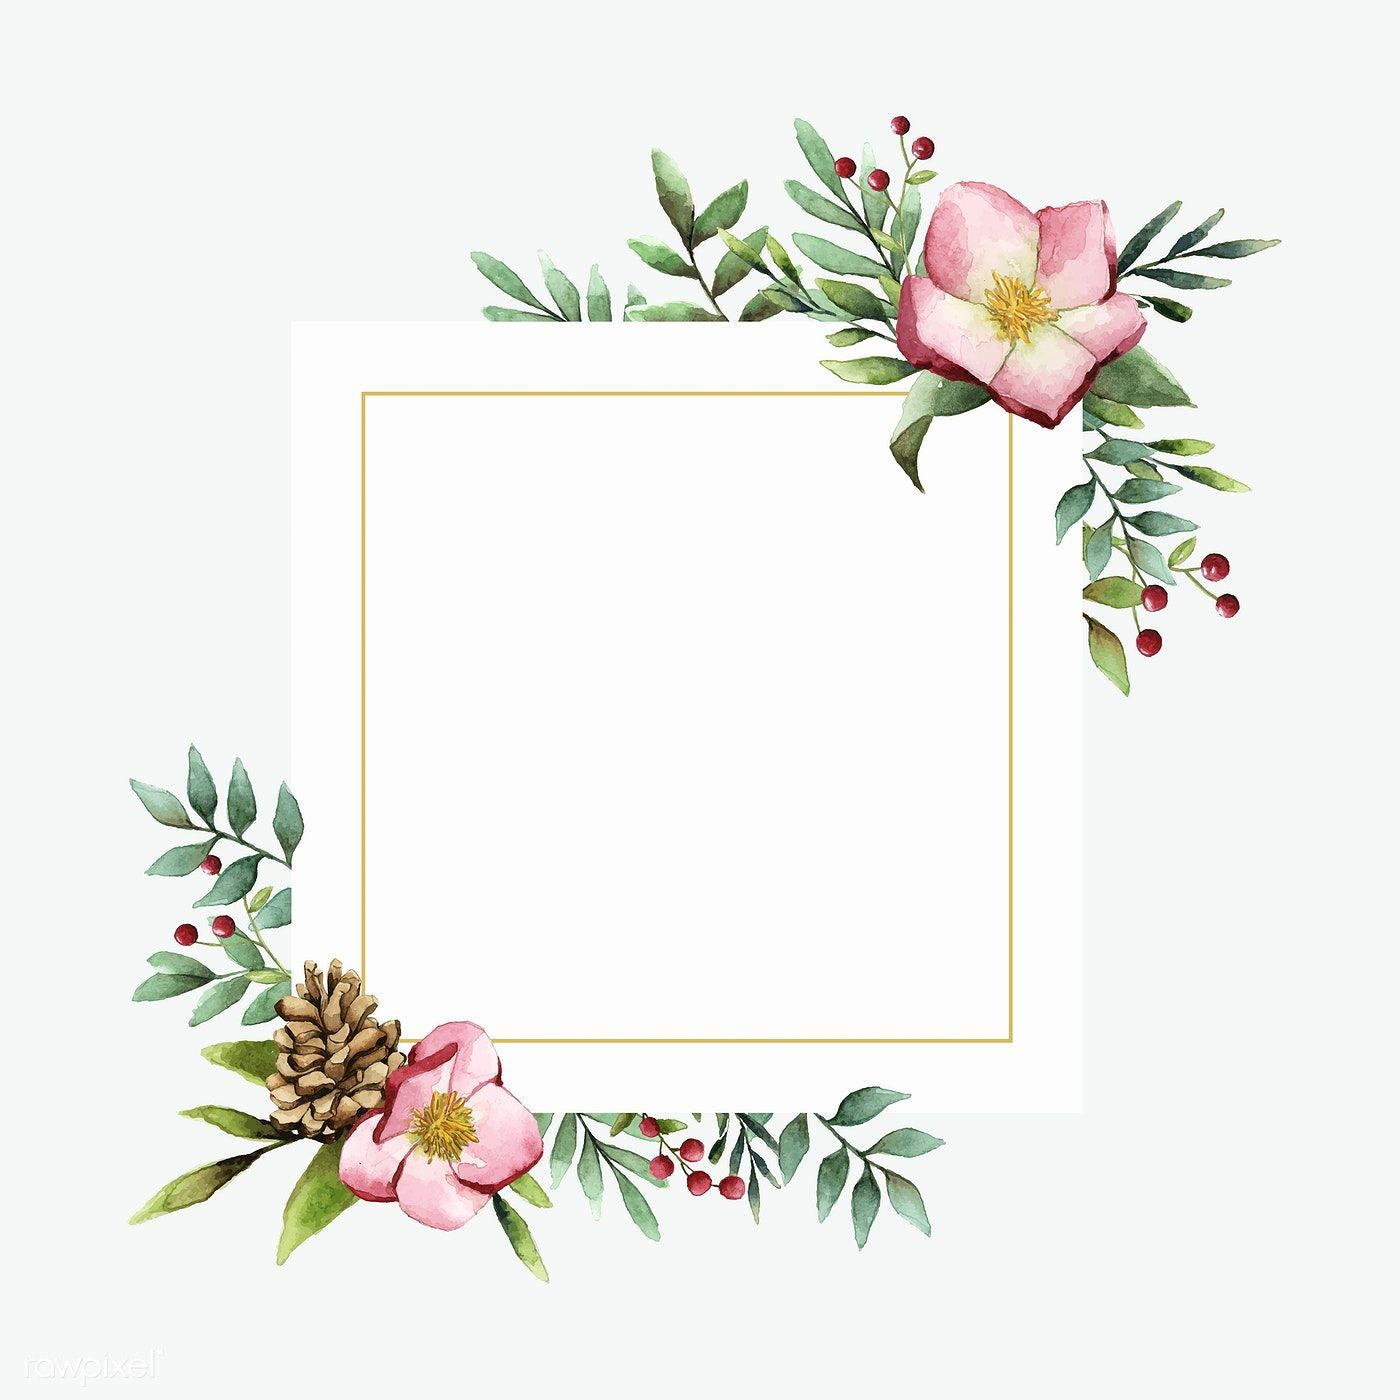 Download Free Illustration Of Blank Round Pink Roses Frame Vector On Blue Background By Busbus About Weddi Pink And White Background Rose Frame Pink Background